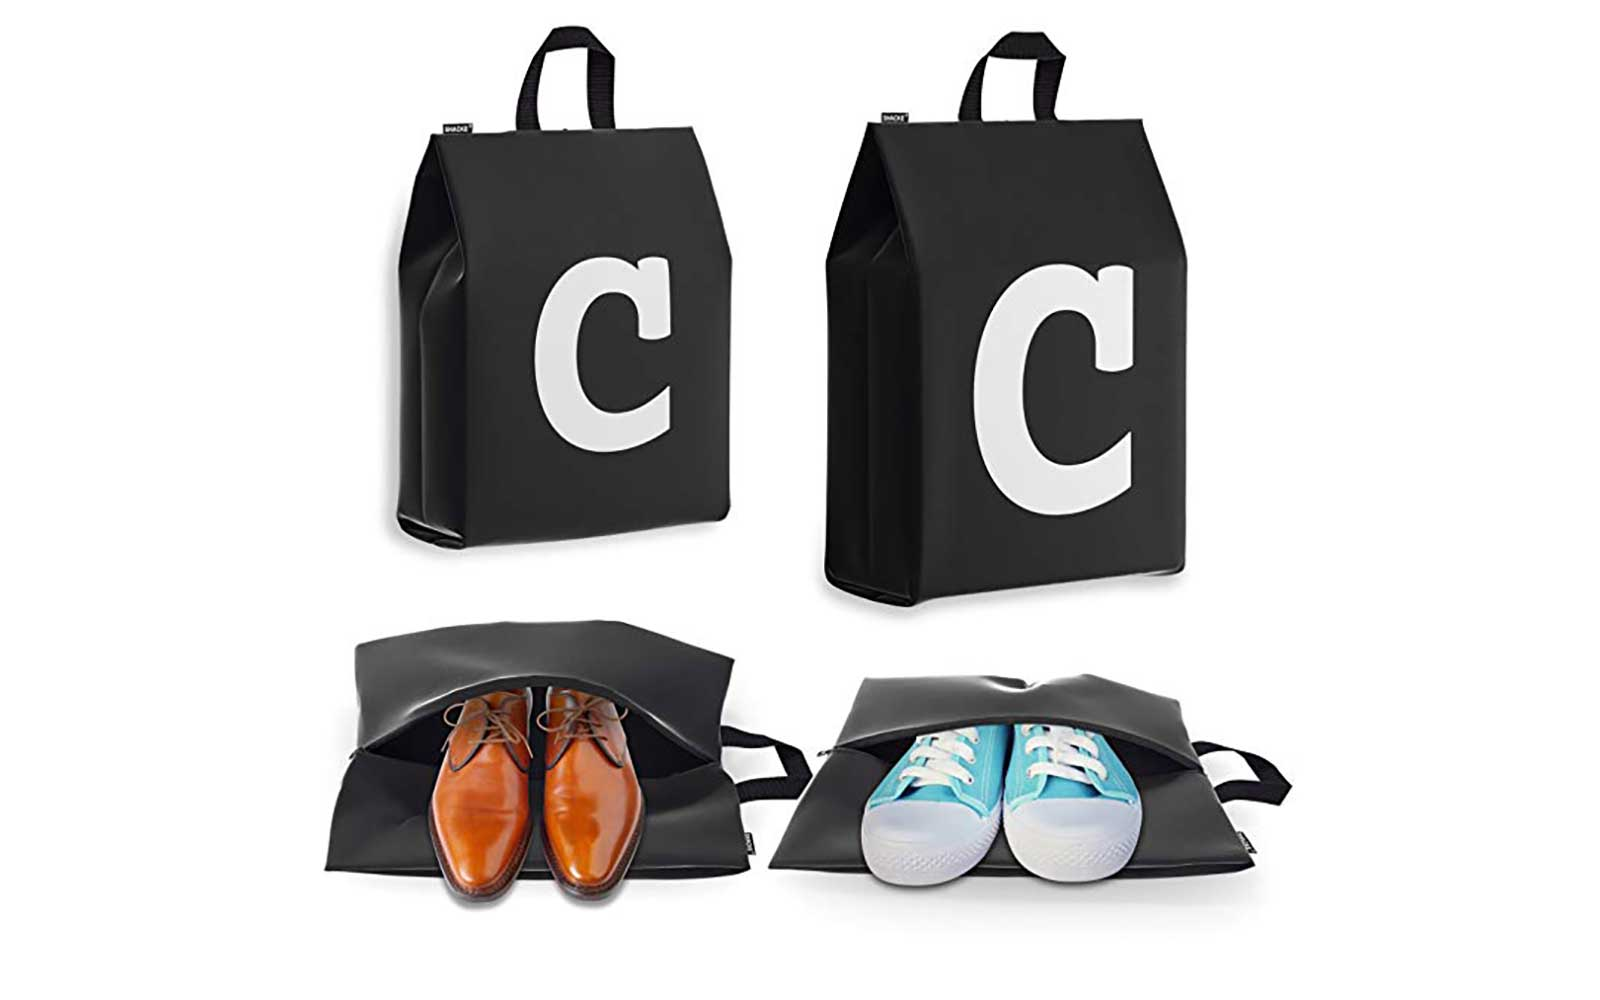 Shacke Personalized Shoe Bags